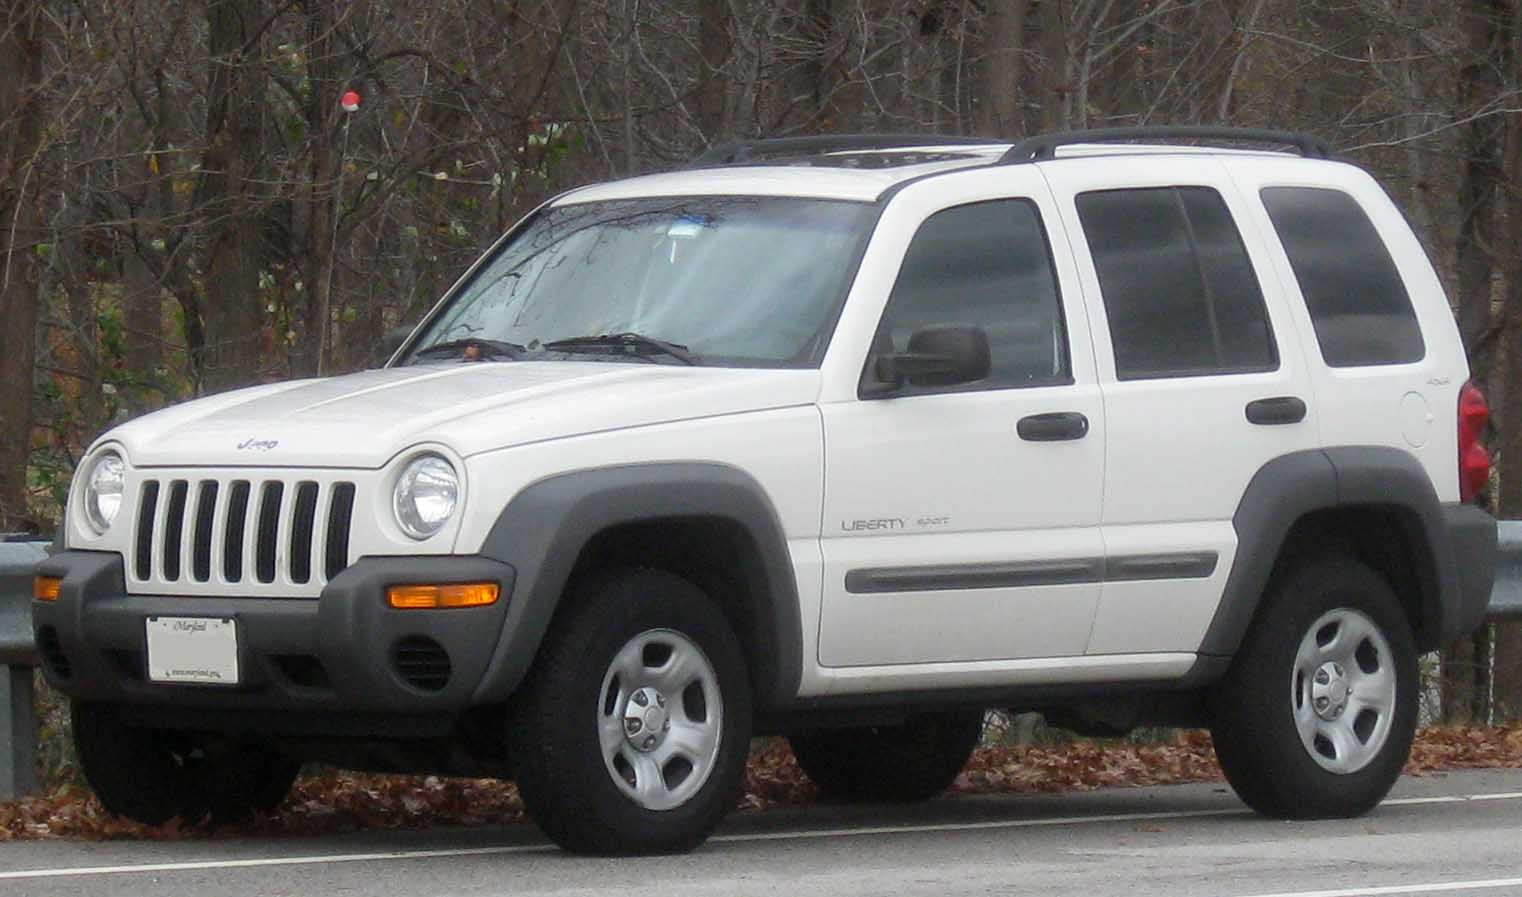 2002 jeep liberty pictures information and specs auto for 2002 jeep liberty window regulator recall